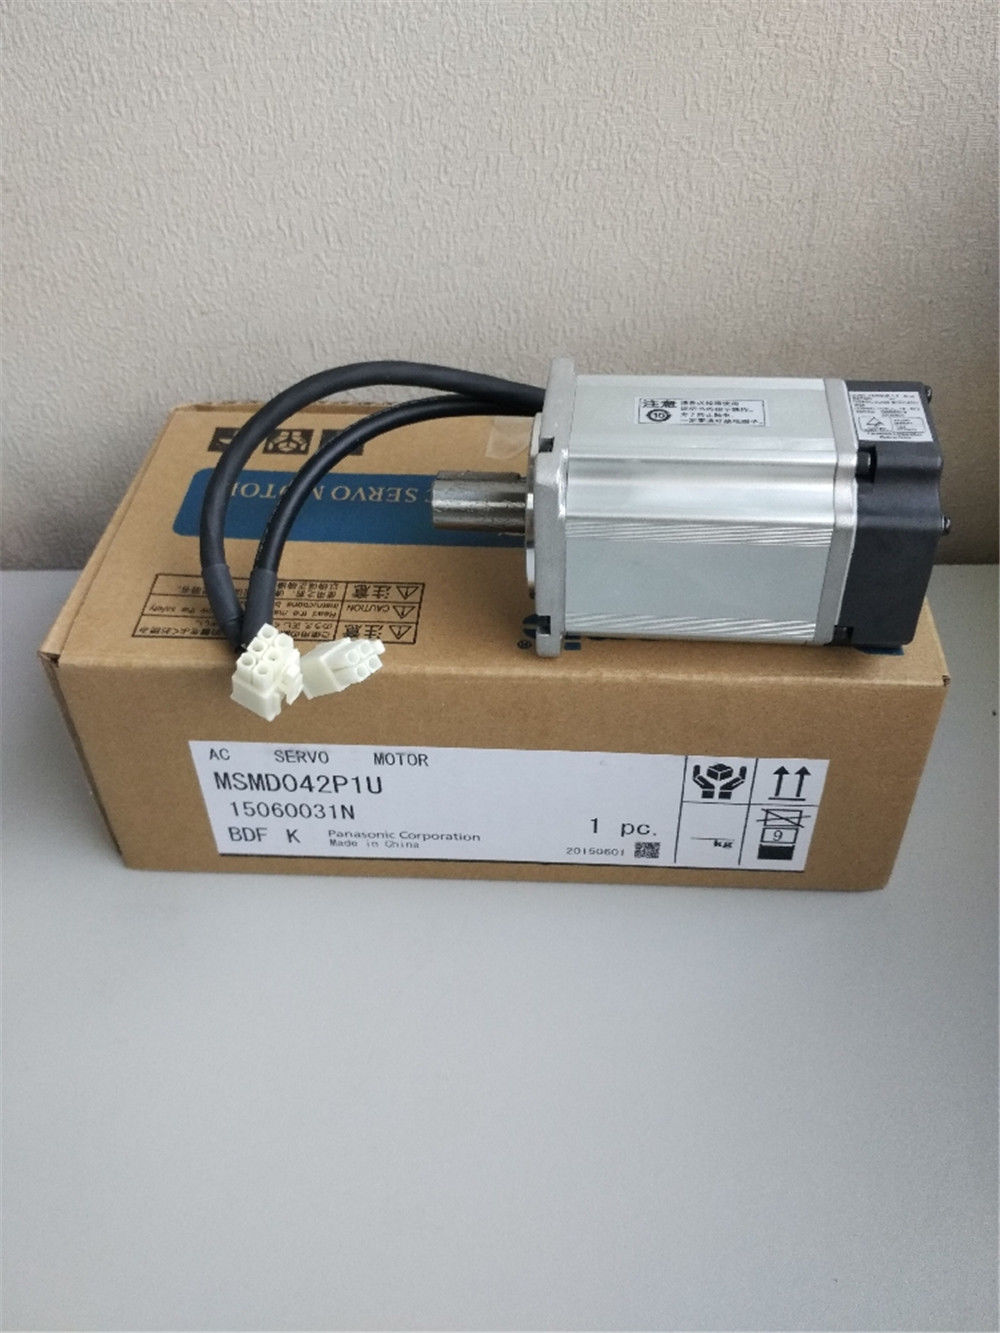 100% NEW PANASONIC AC Servo motor MSMD042P1U in box